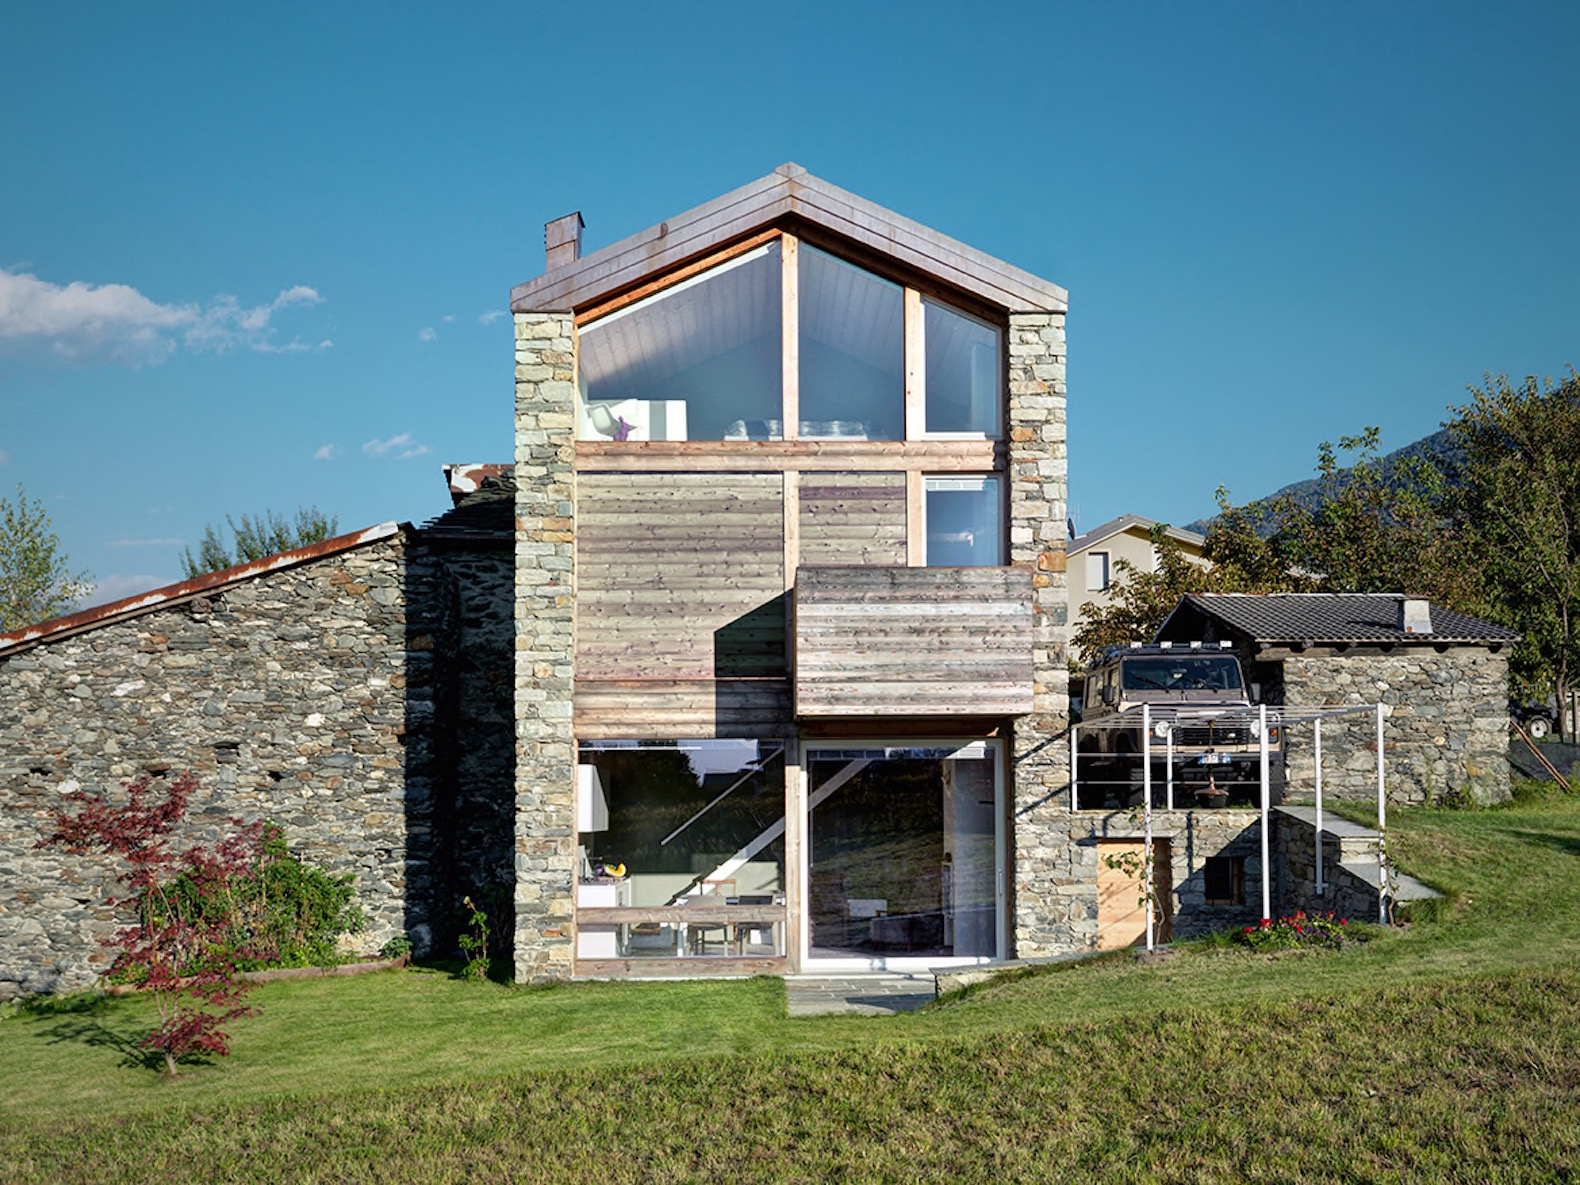 Modern Alpine Home Is Built On The Ruins Of An Old Rustic Structure